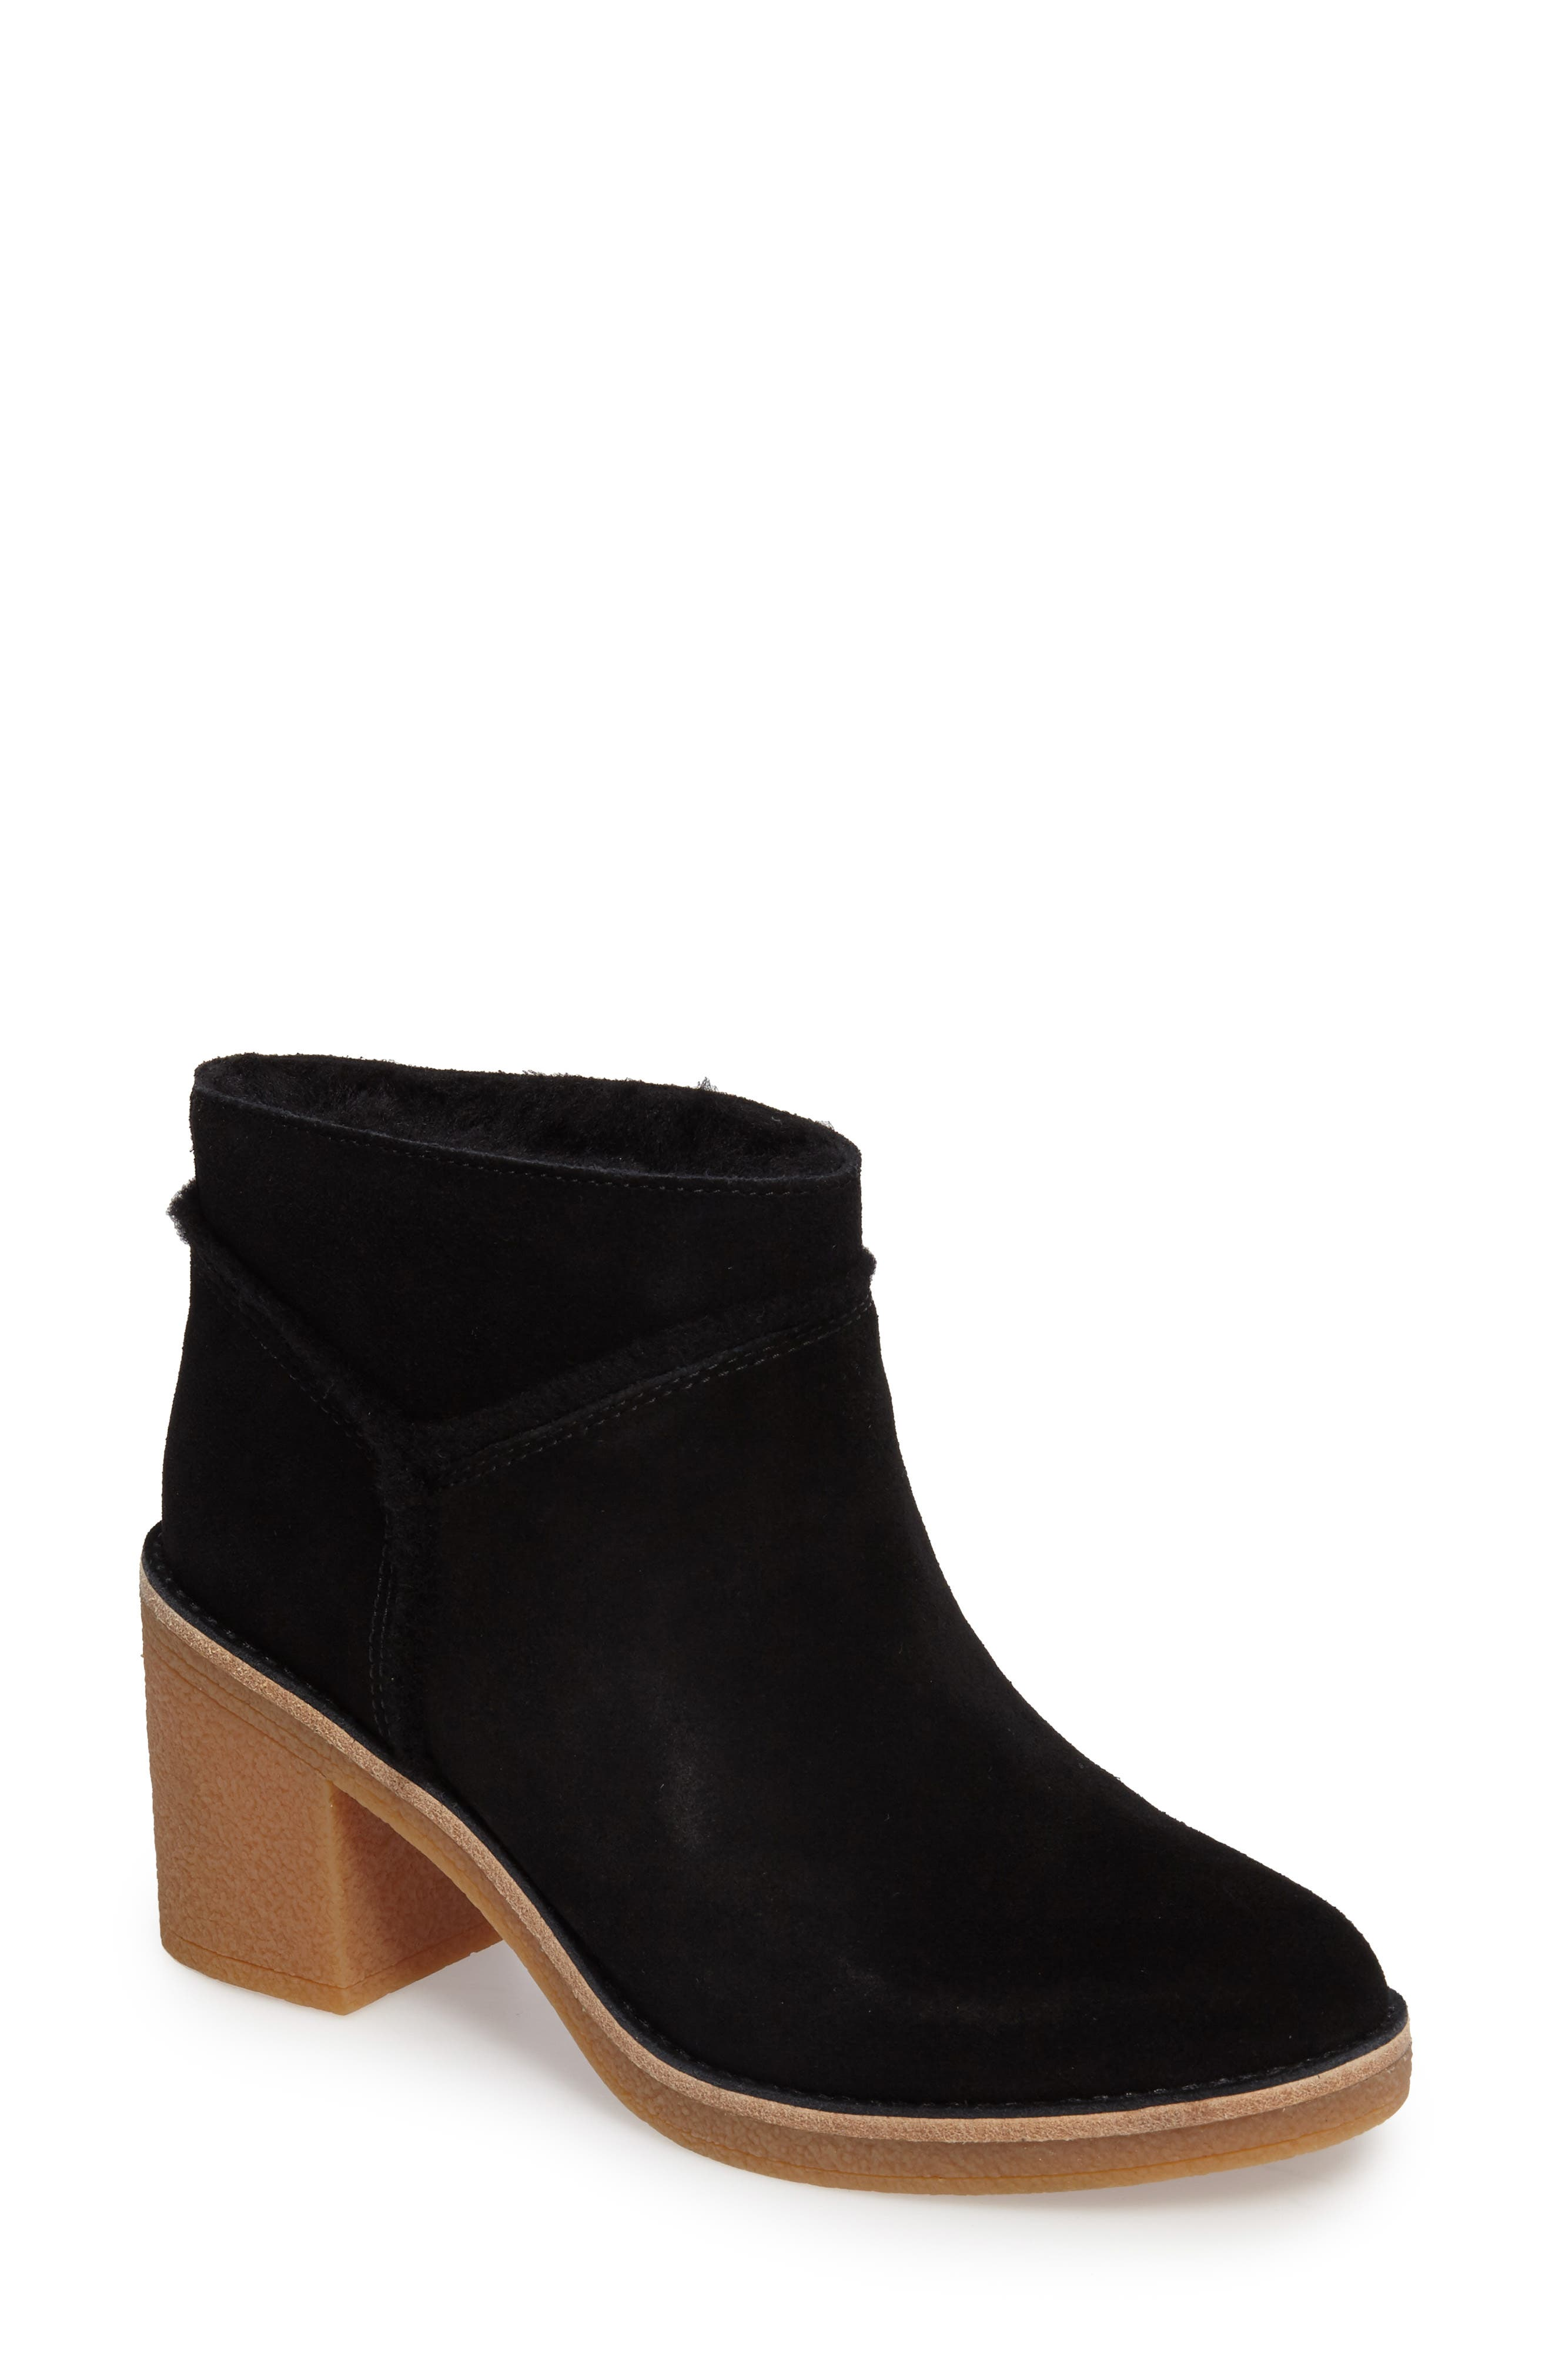 Kasen Genuine Sheepskin Lined Bootie,                             Main thumbnail 1, color,                             001